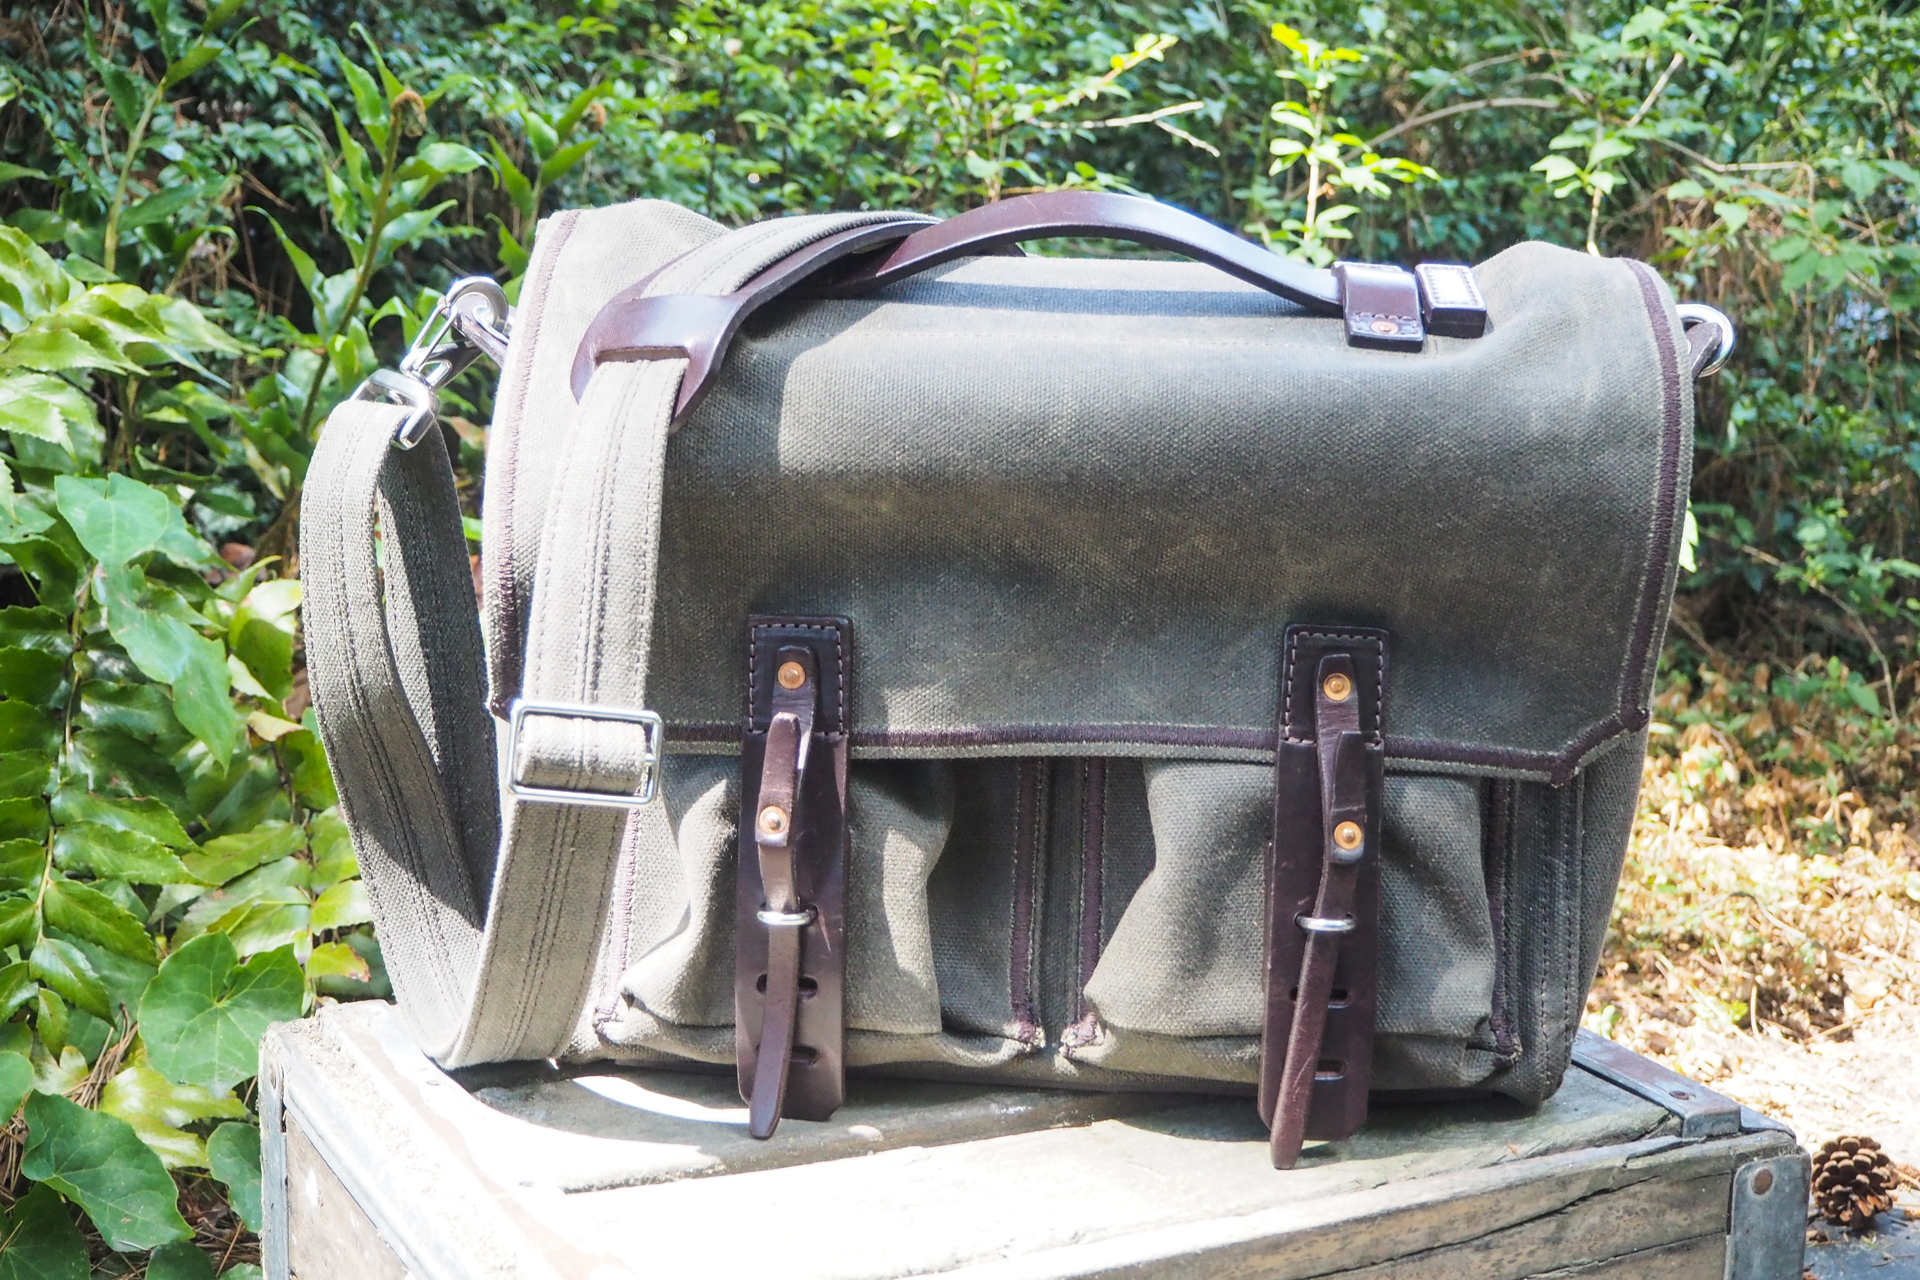 Waxed canvas bags from Waterfield, Manhattan Portage, Saddleback and more – TechCrunch 7